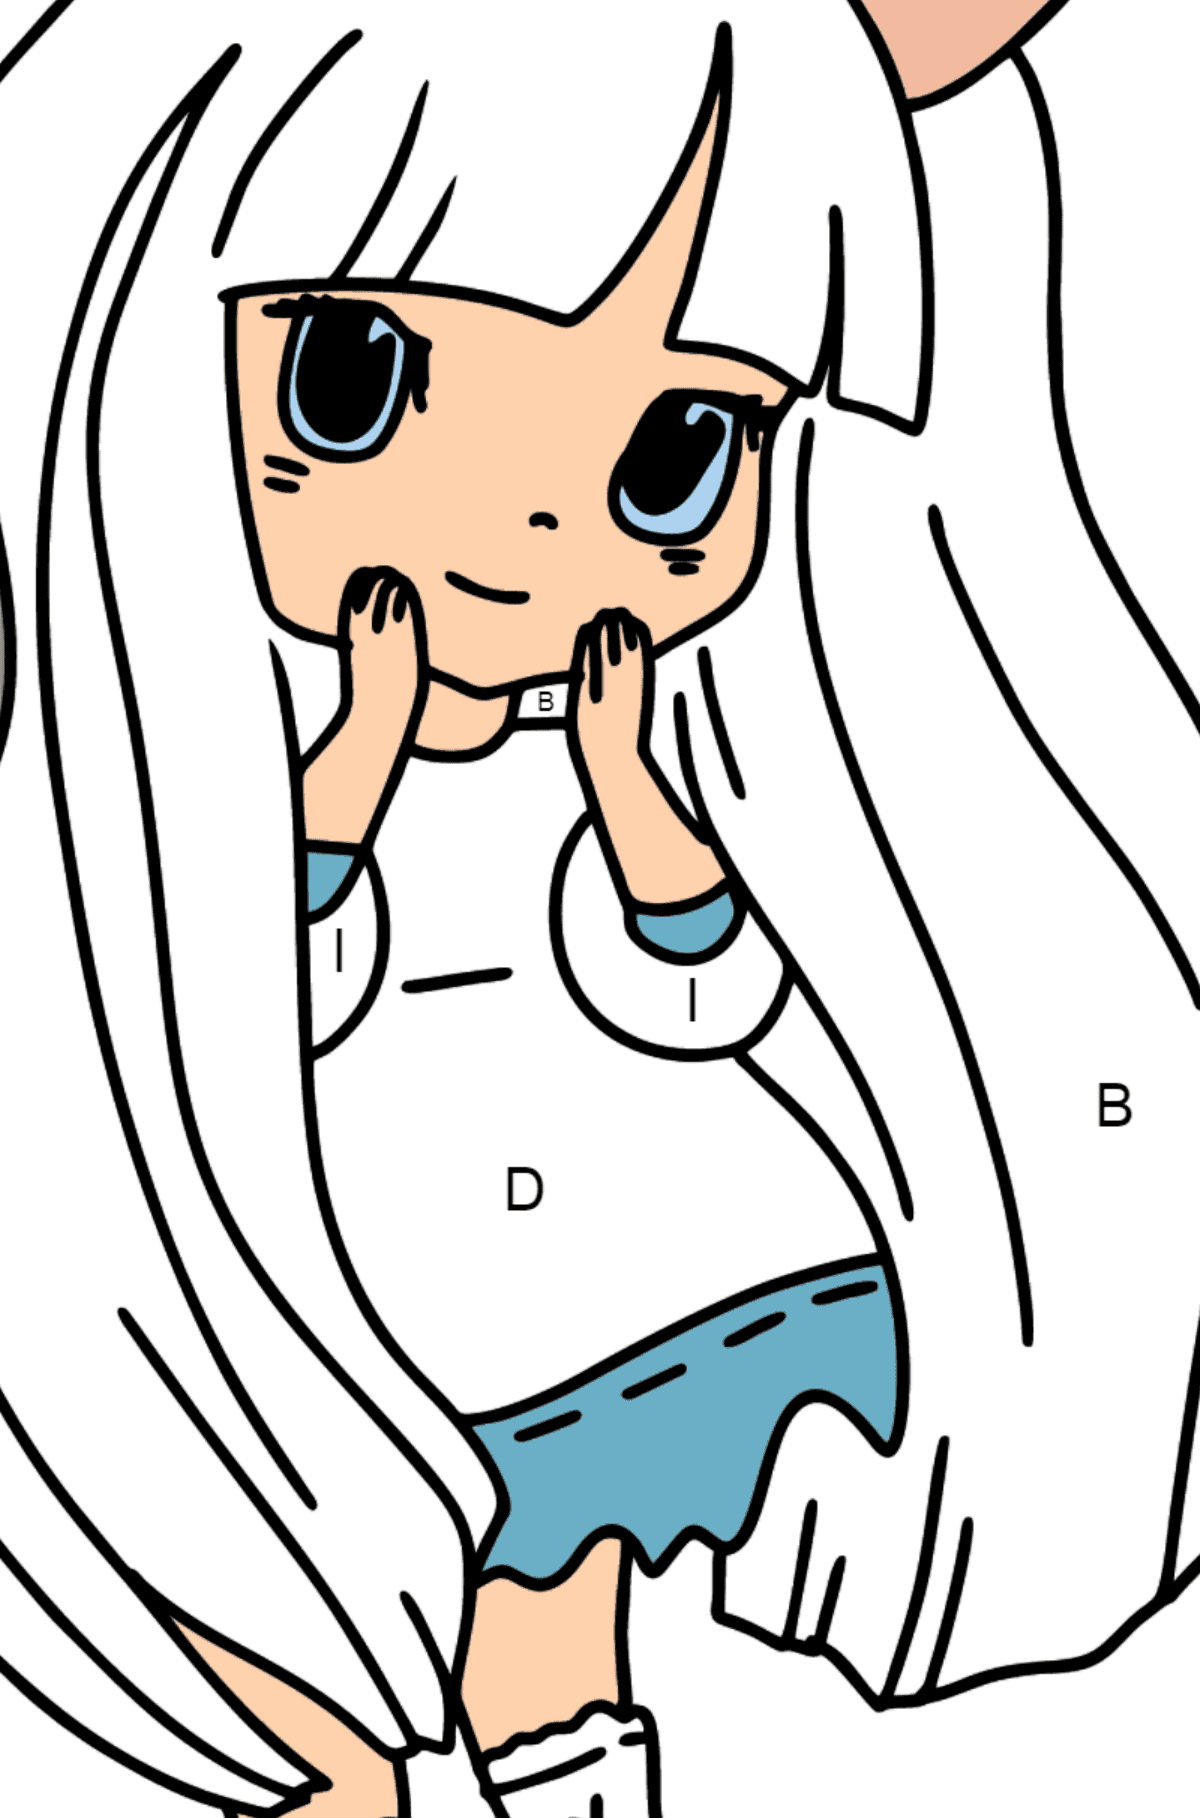 Anime Bunny Girl Coloring Pages - Coloring by Letters for Kids